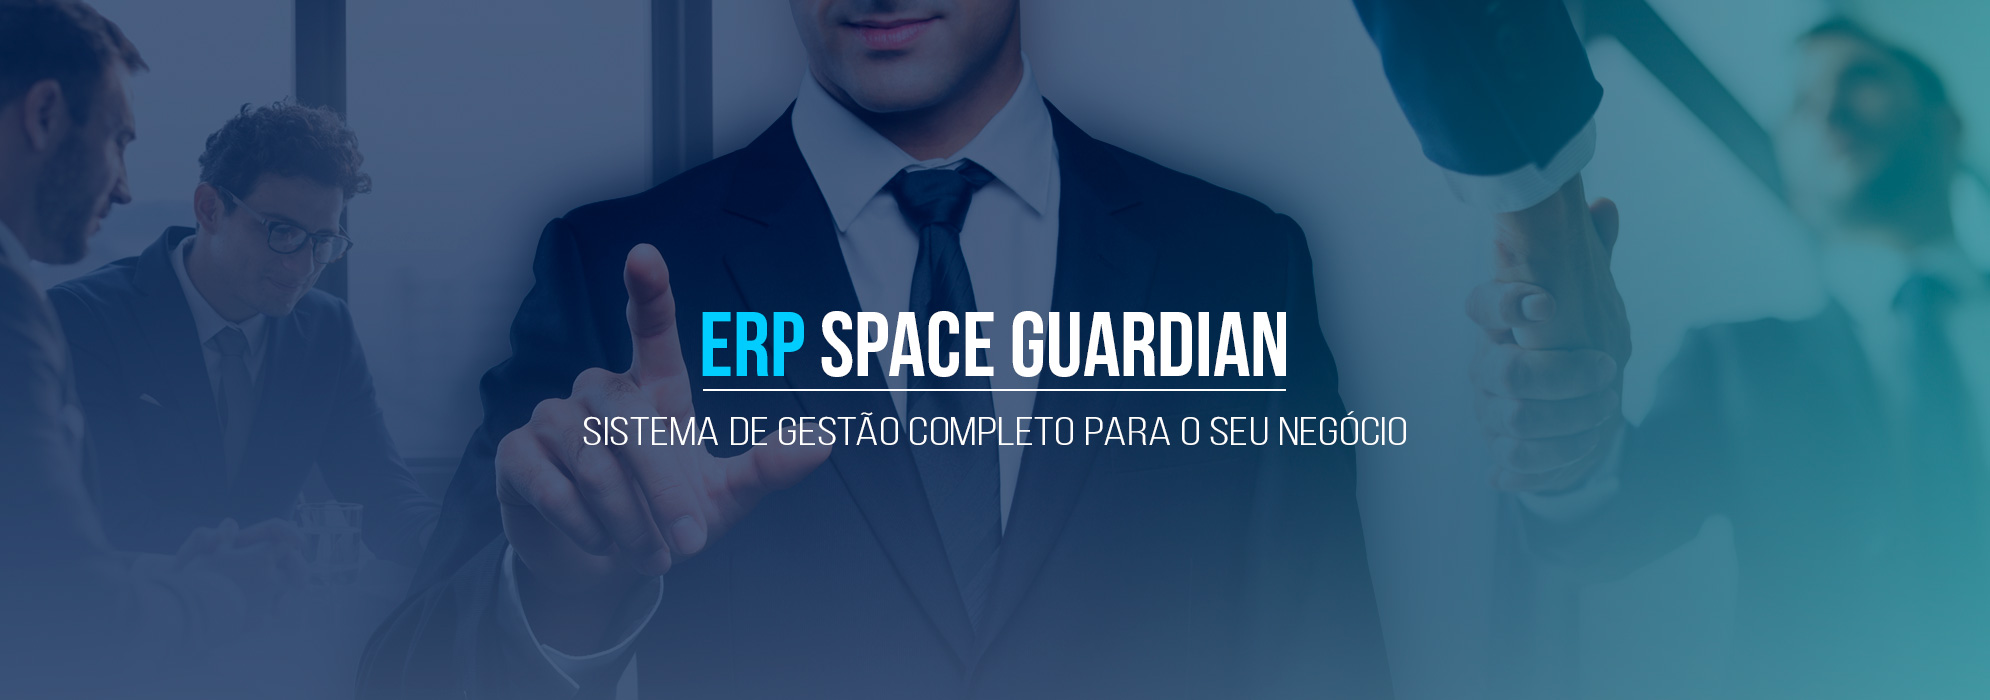 banner-erp-space-guardian